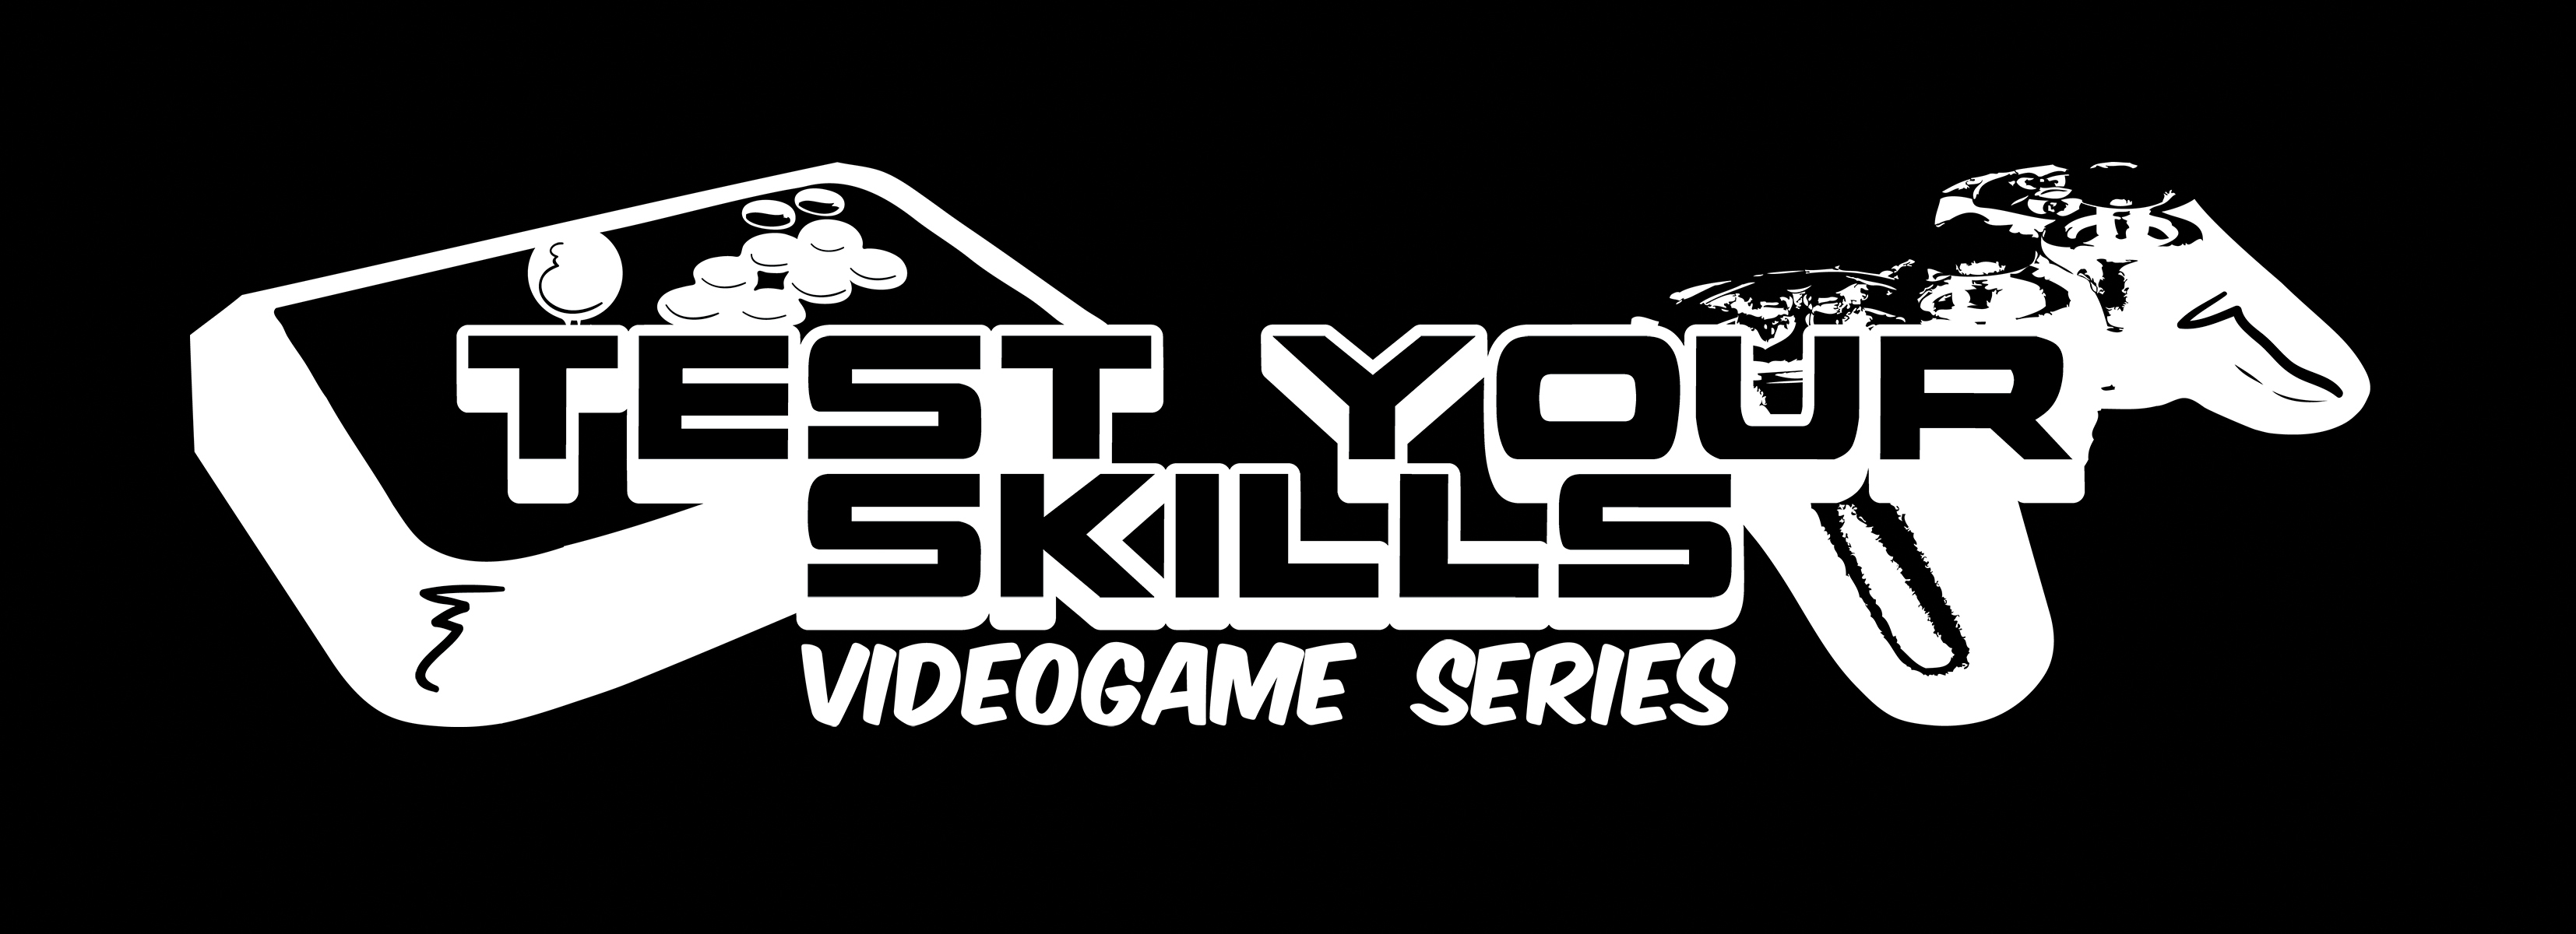 Test Your Skills VideoGame Series